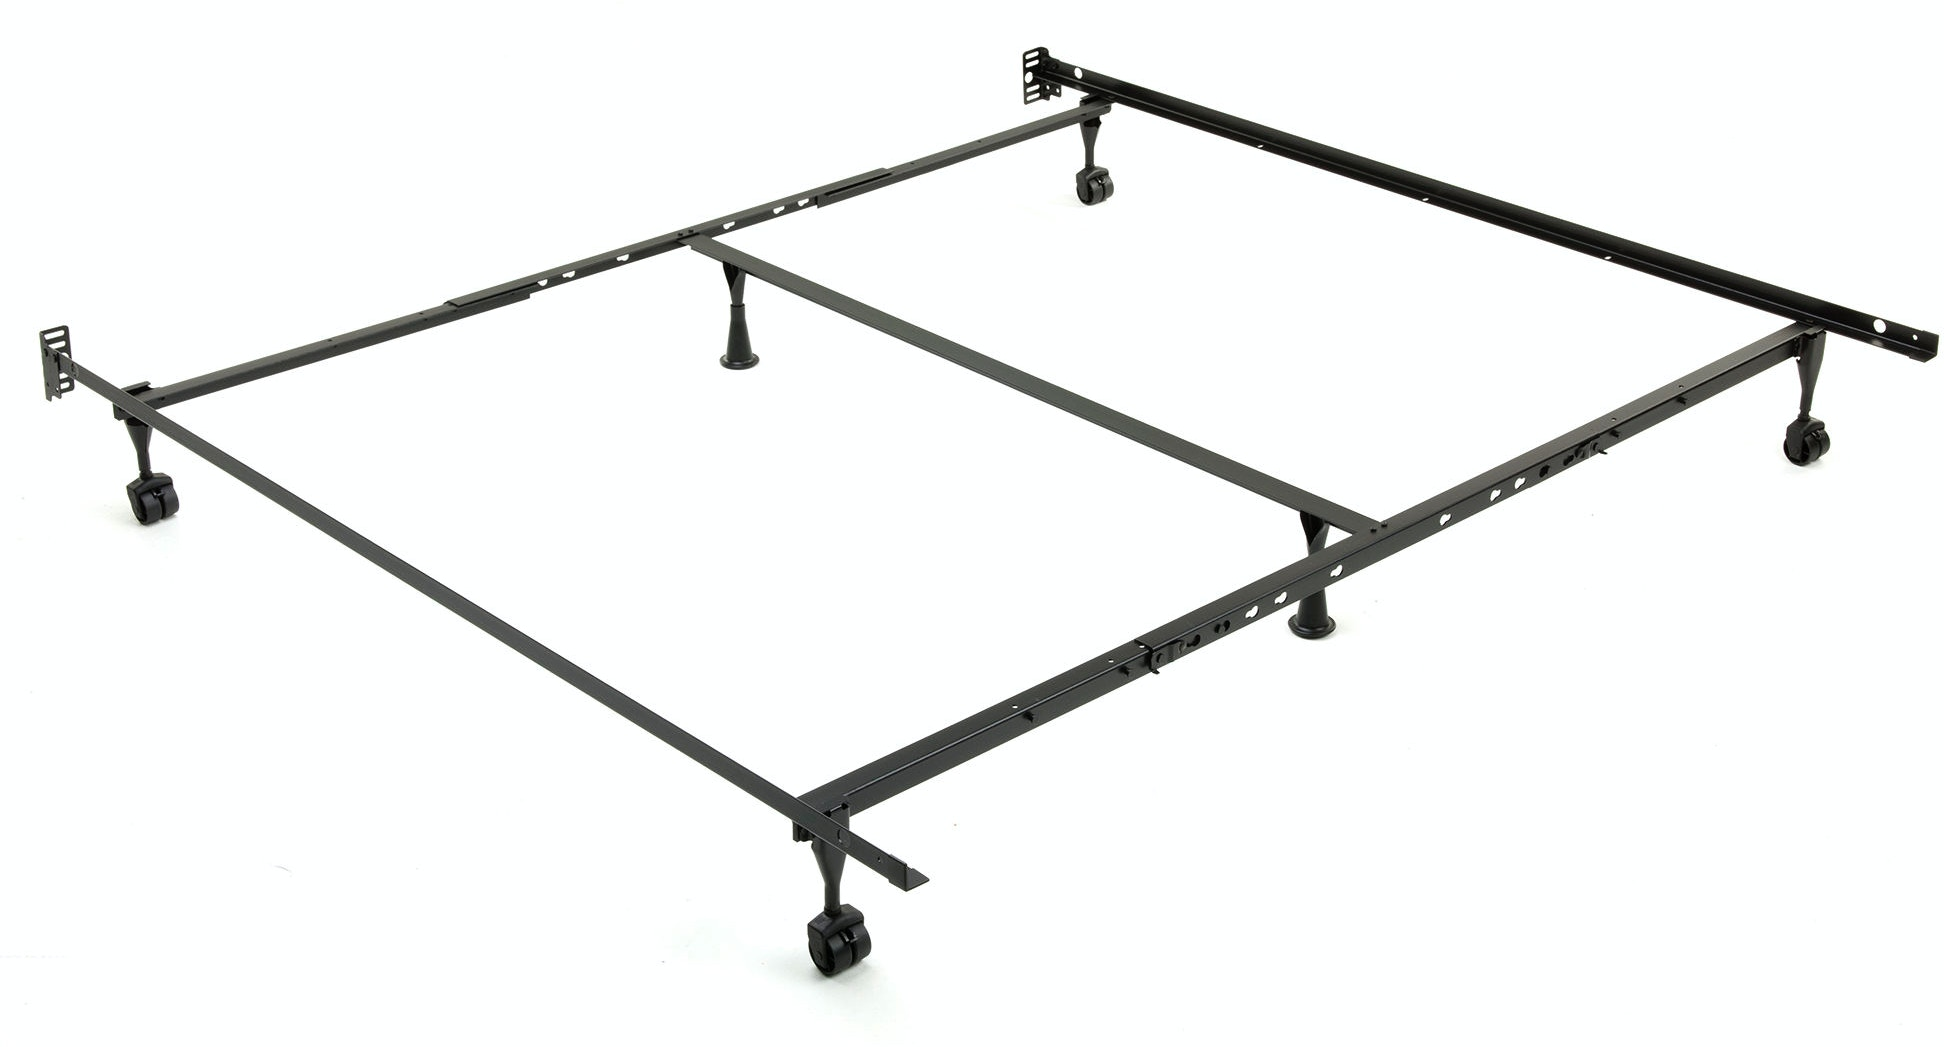 Fashion Bed Group Deluxe Promotional Adjustable Bed Frame